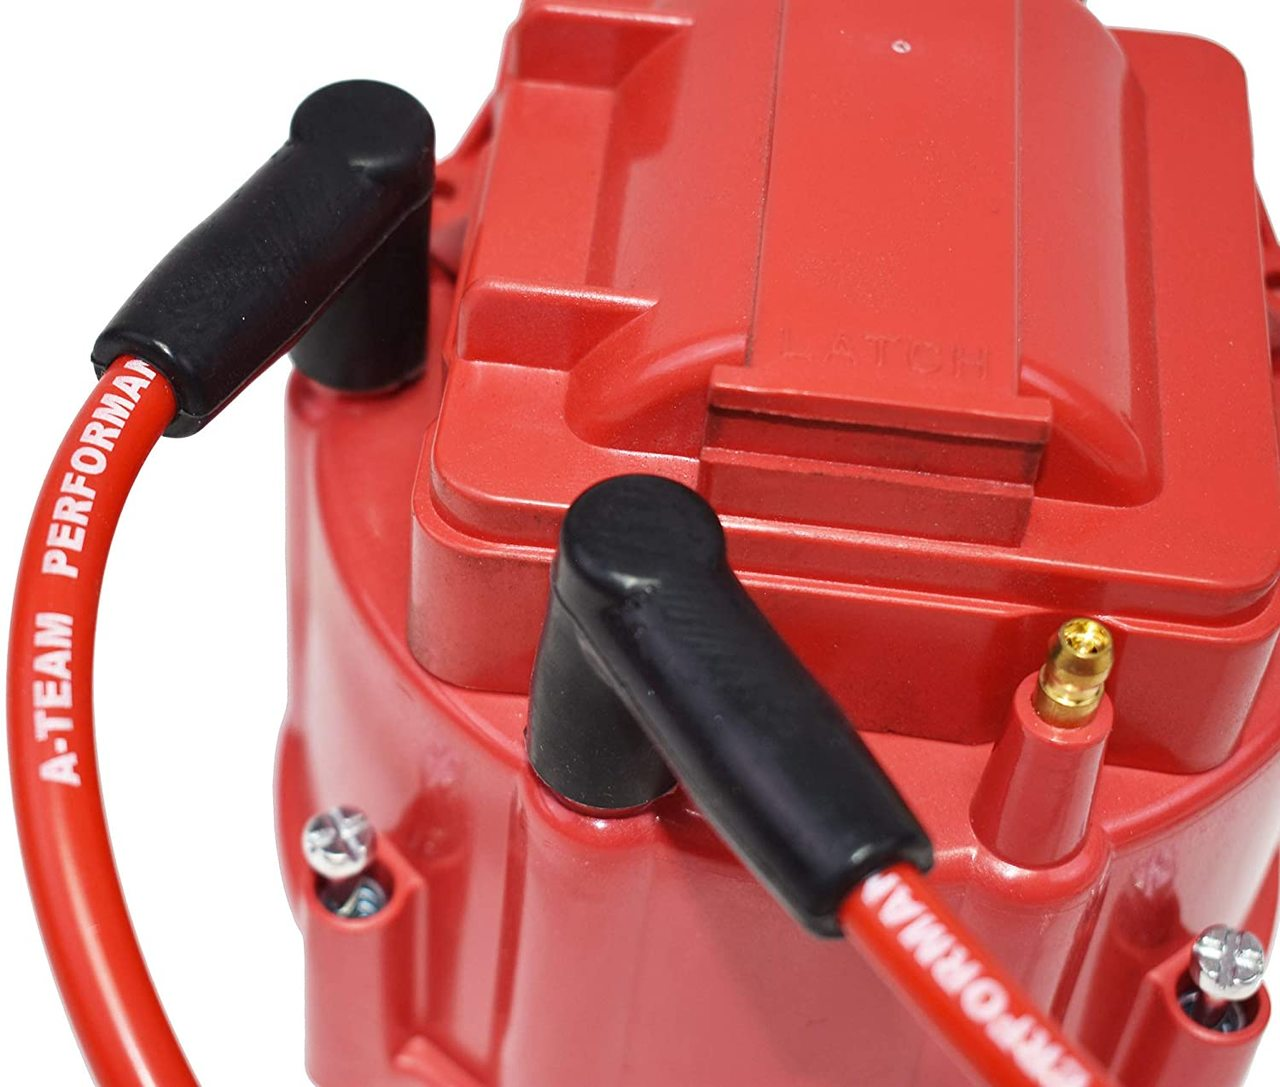 A-Team Performance Red Silicone Spark Plug Wires Compatible with SBC for Marine Use